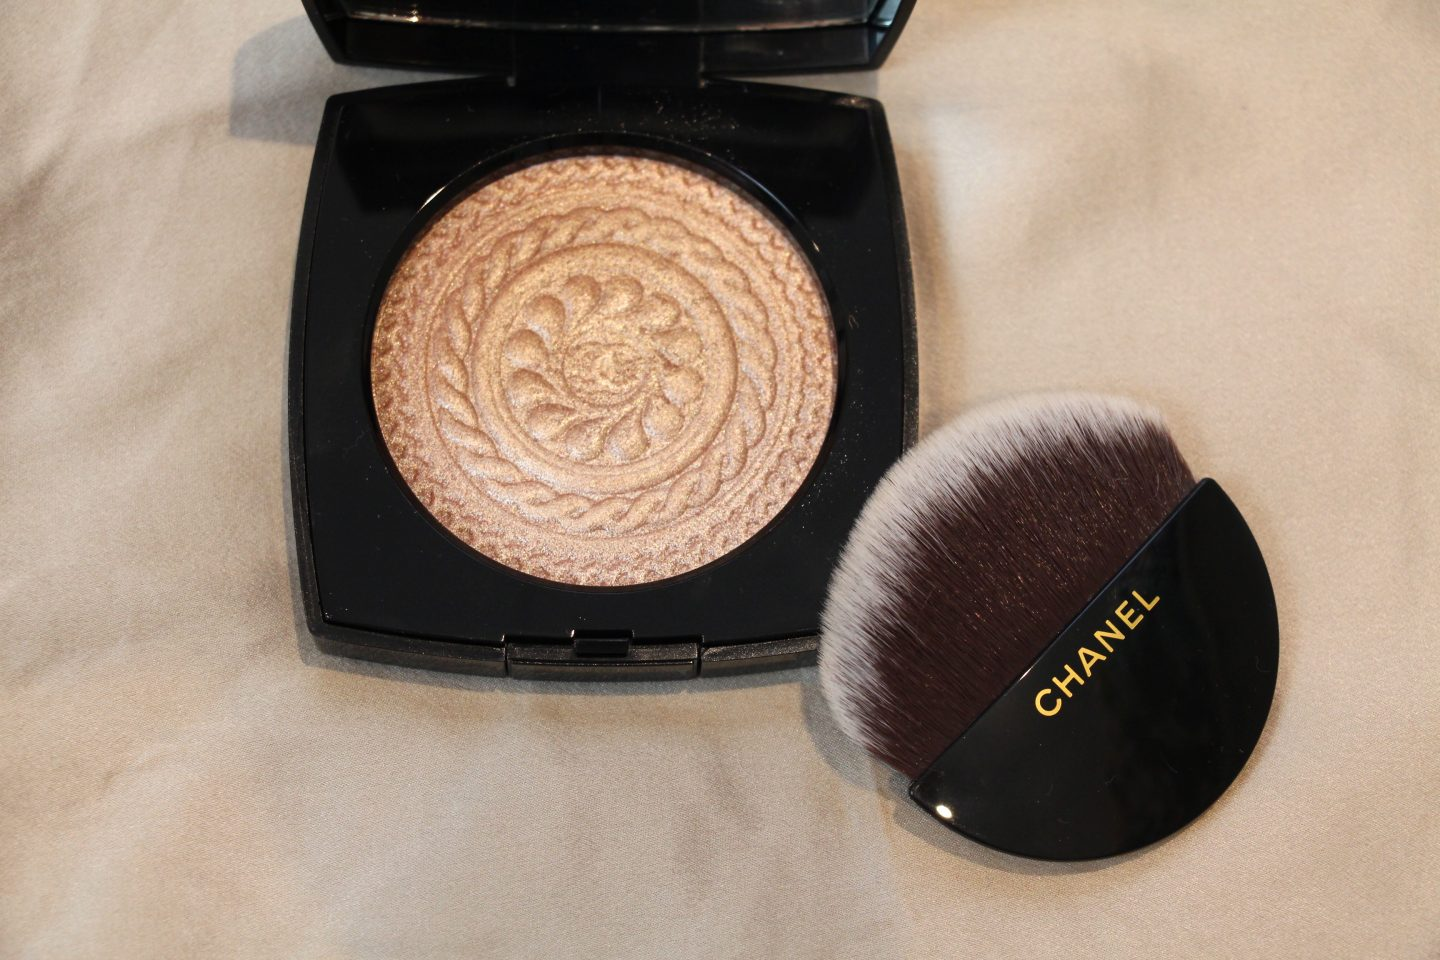 Chanel Holiday 2019 Collection: Les ornements de Chanel Highlighter - Éclat Magnétique de Chanel illuminating powder in Metal Peach